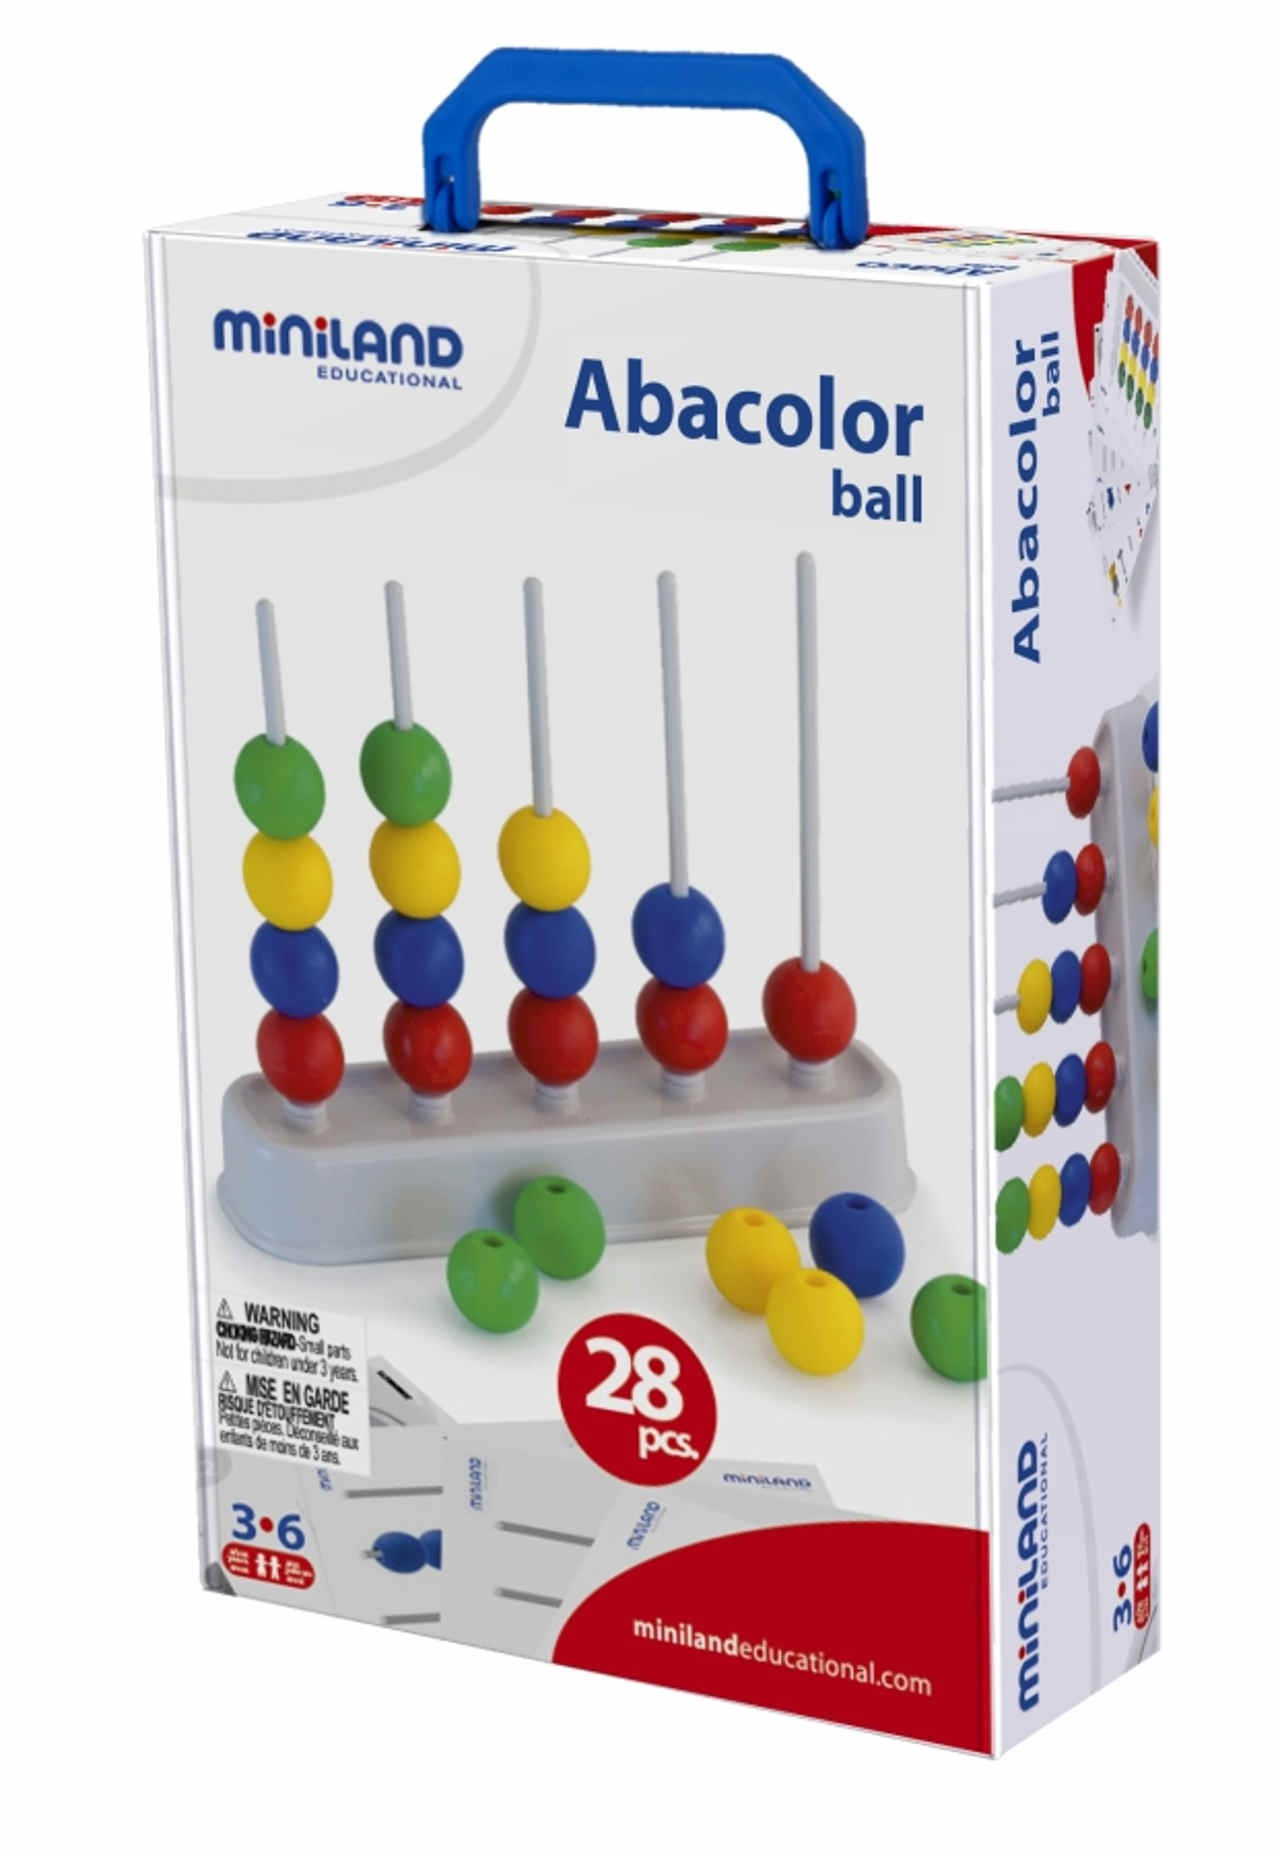 Abacolor Balls